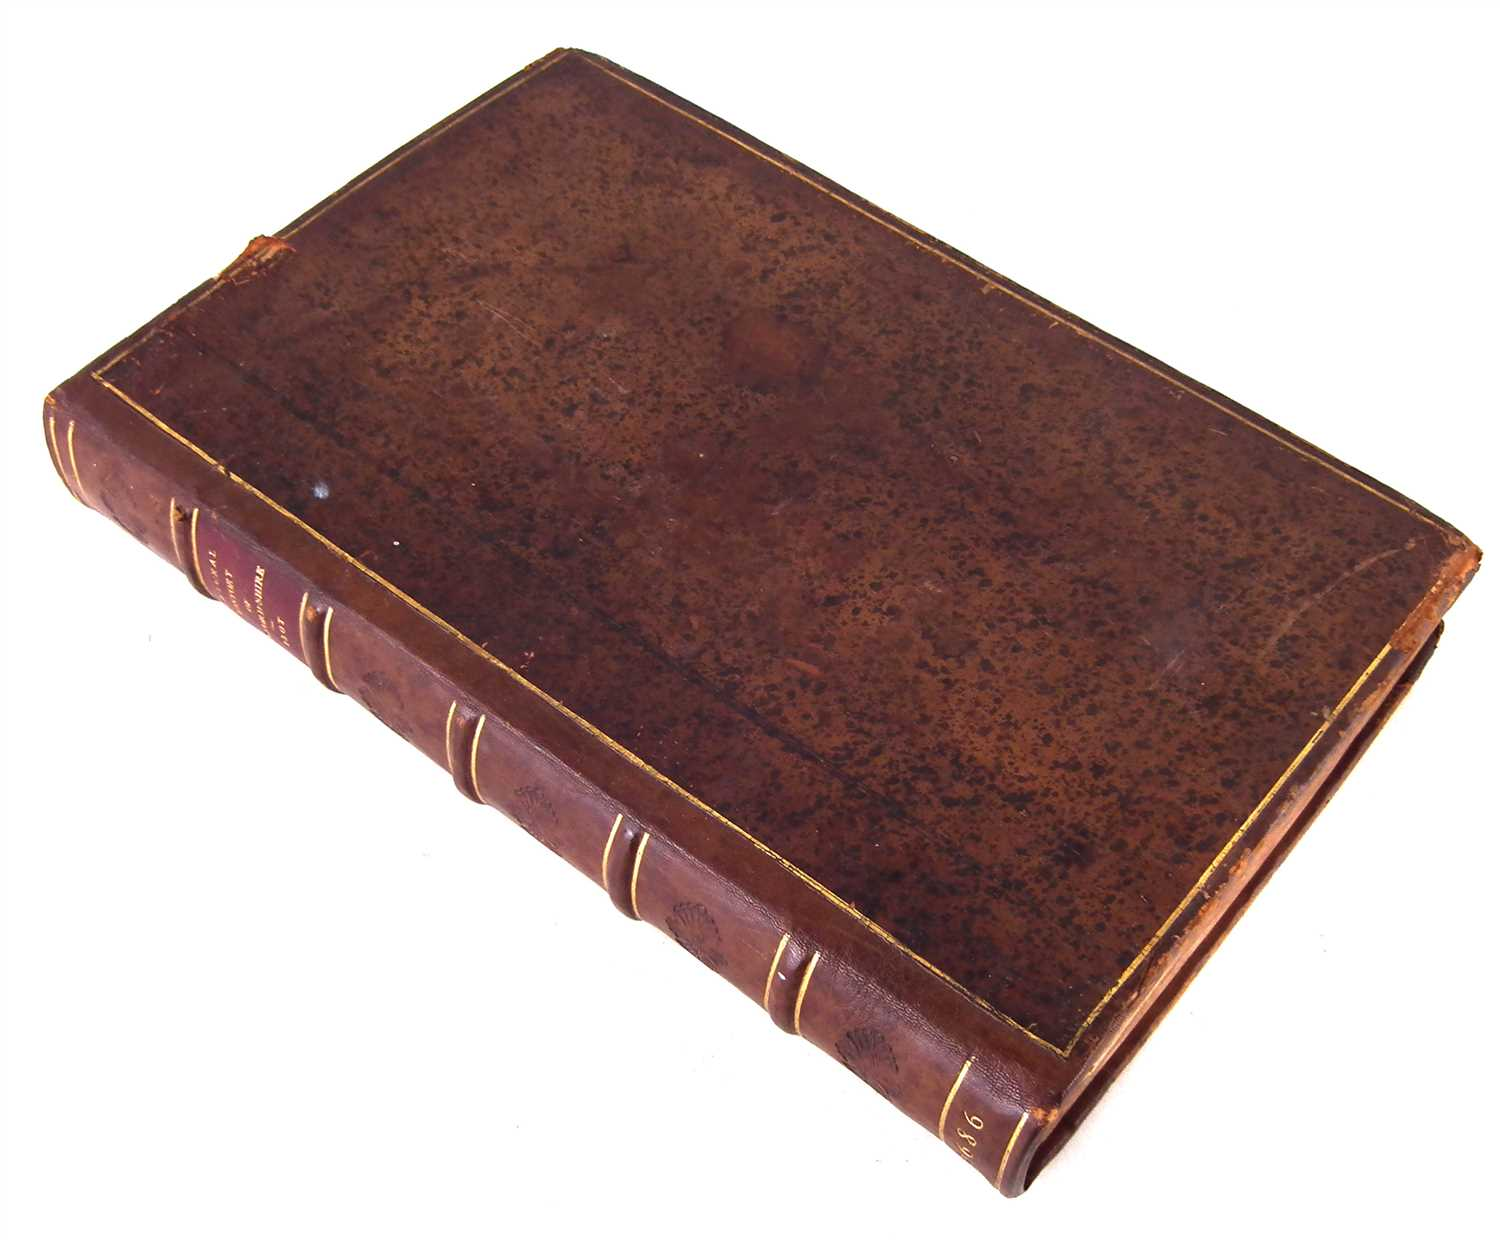 188 - Plot, R., The Natural History of Staffordshire, 1686.